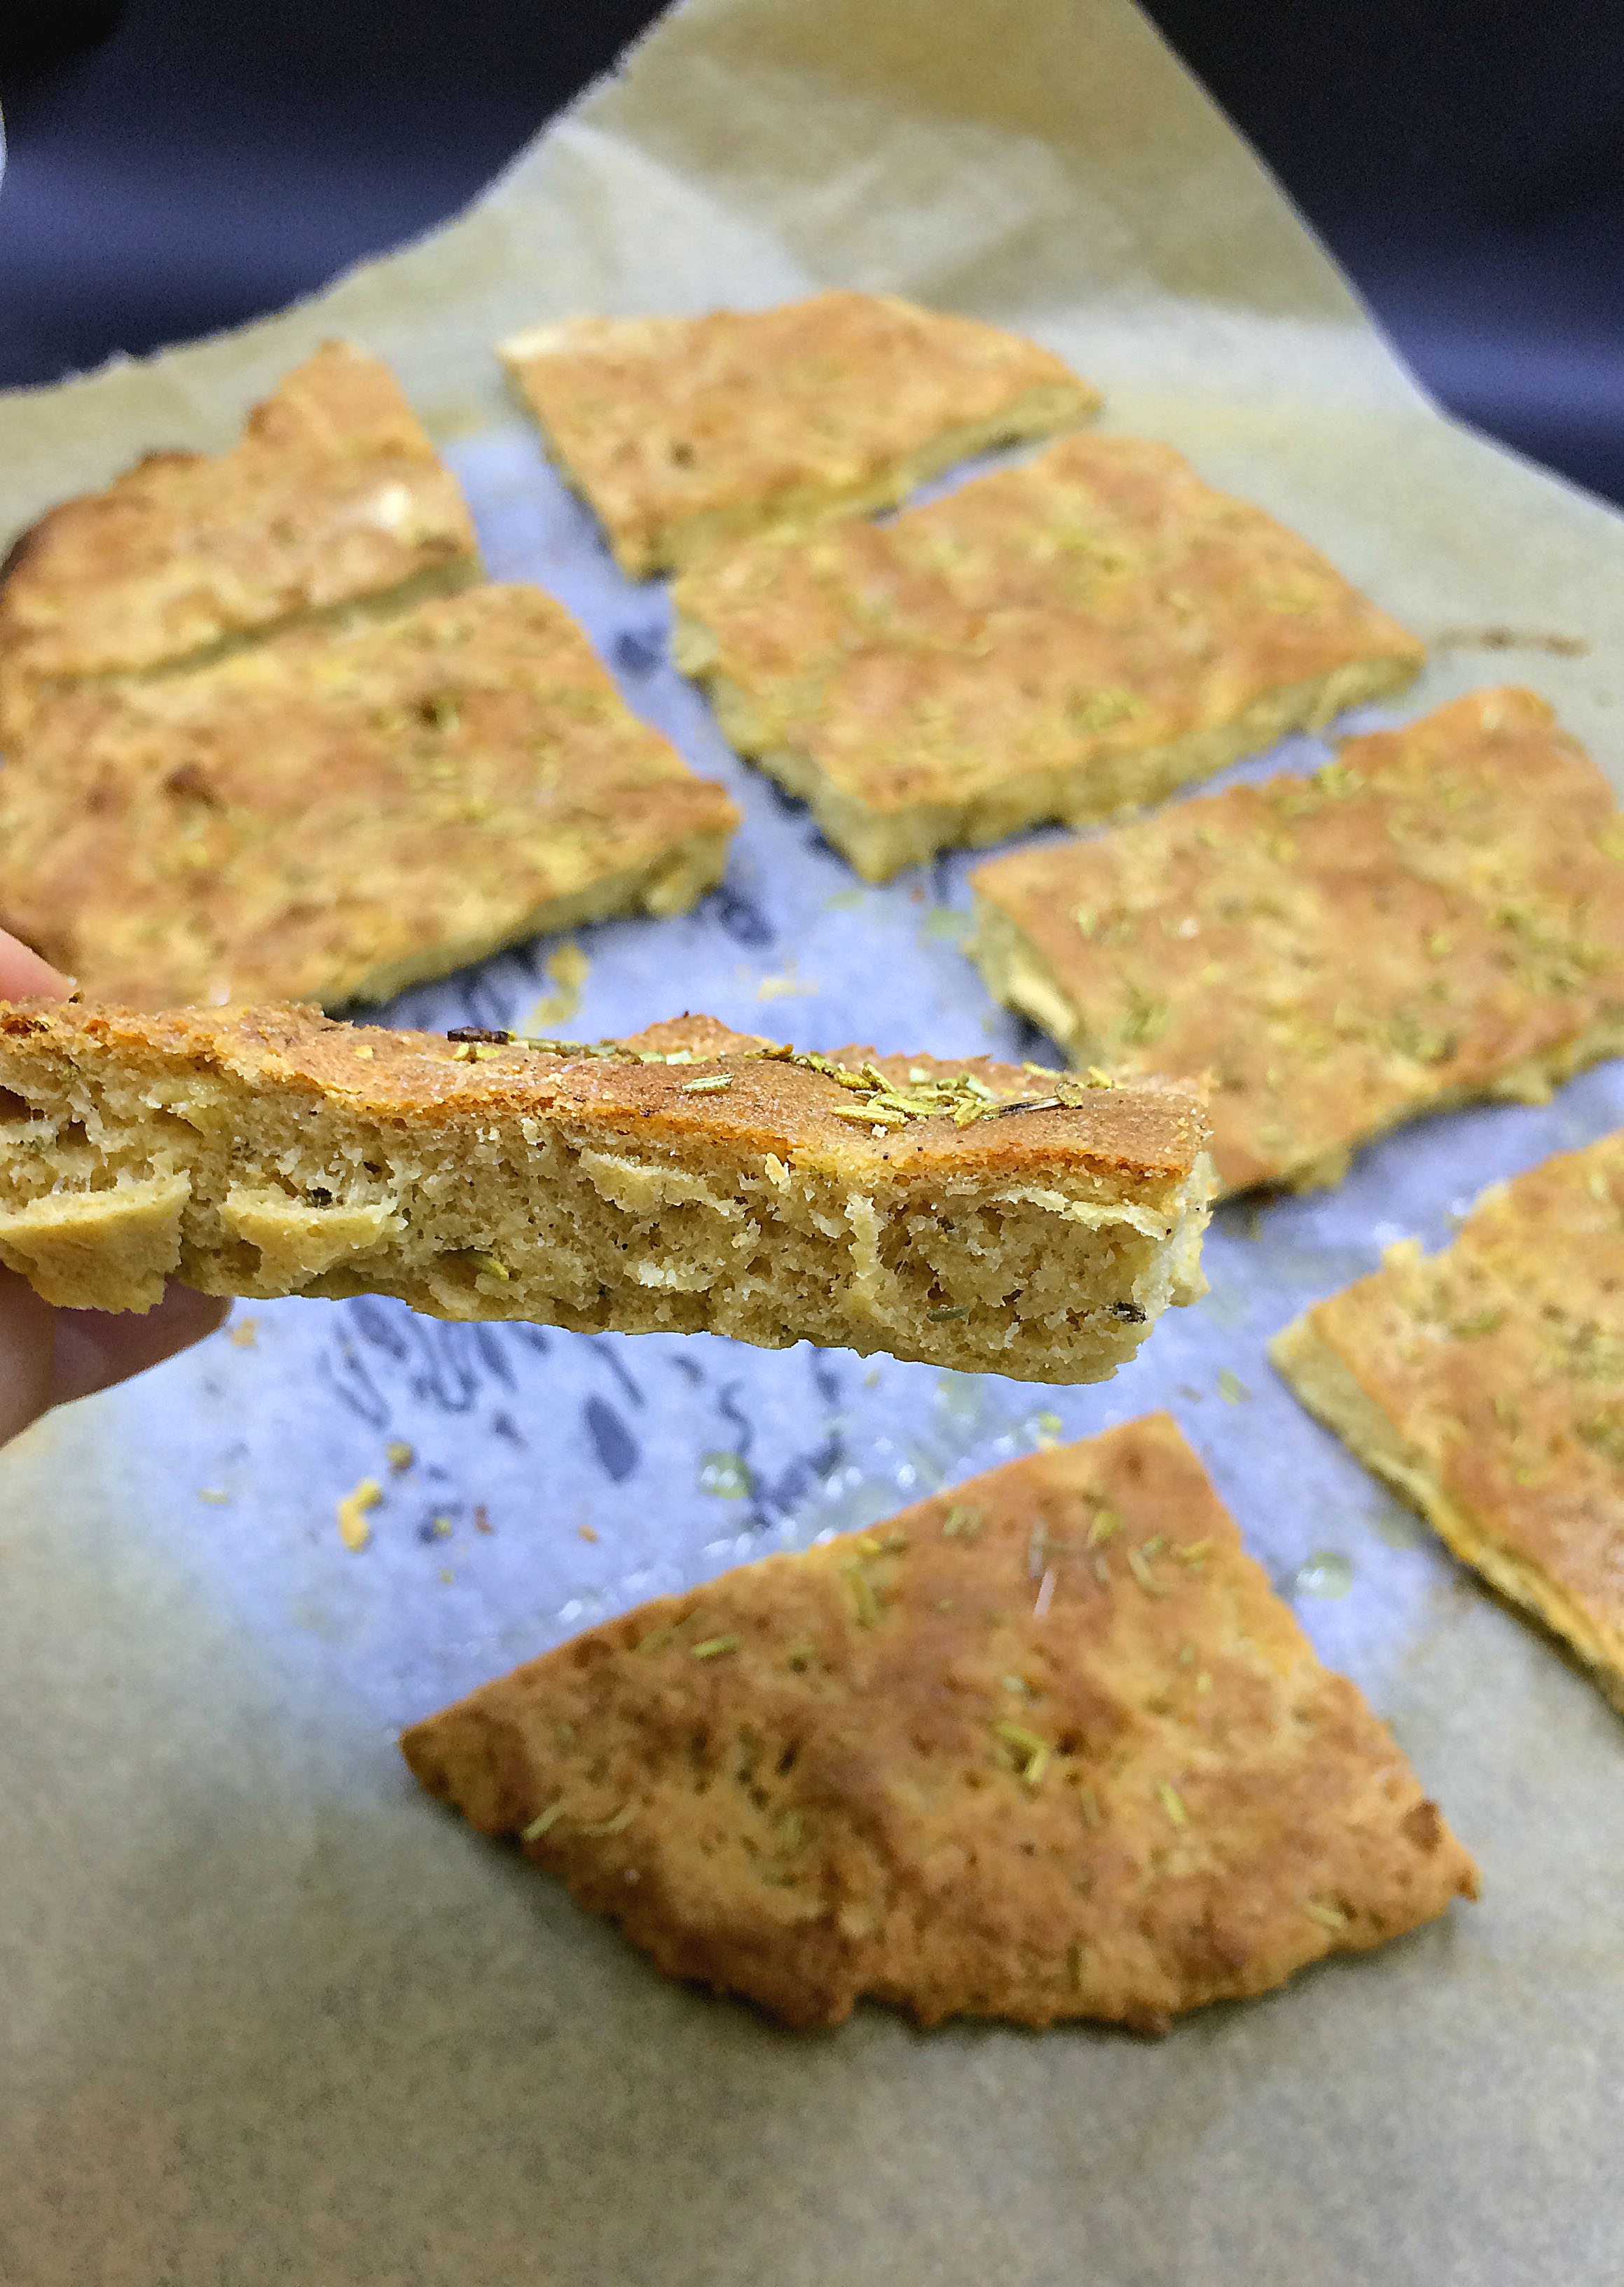 Secretly healthy Rosemary Flatbreat Focaccia-style {Low carb, nlo yeast} / via kitchen-impossible.net #healthyfocaccia #lowcarbfoccia #lowcarbbread #lowcarbflatbreat #healthyflatbrad #lowcarbrecipe